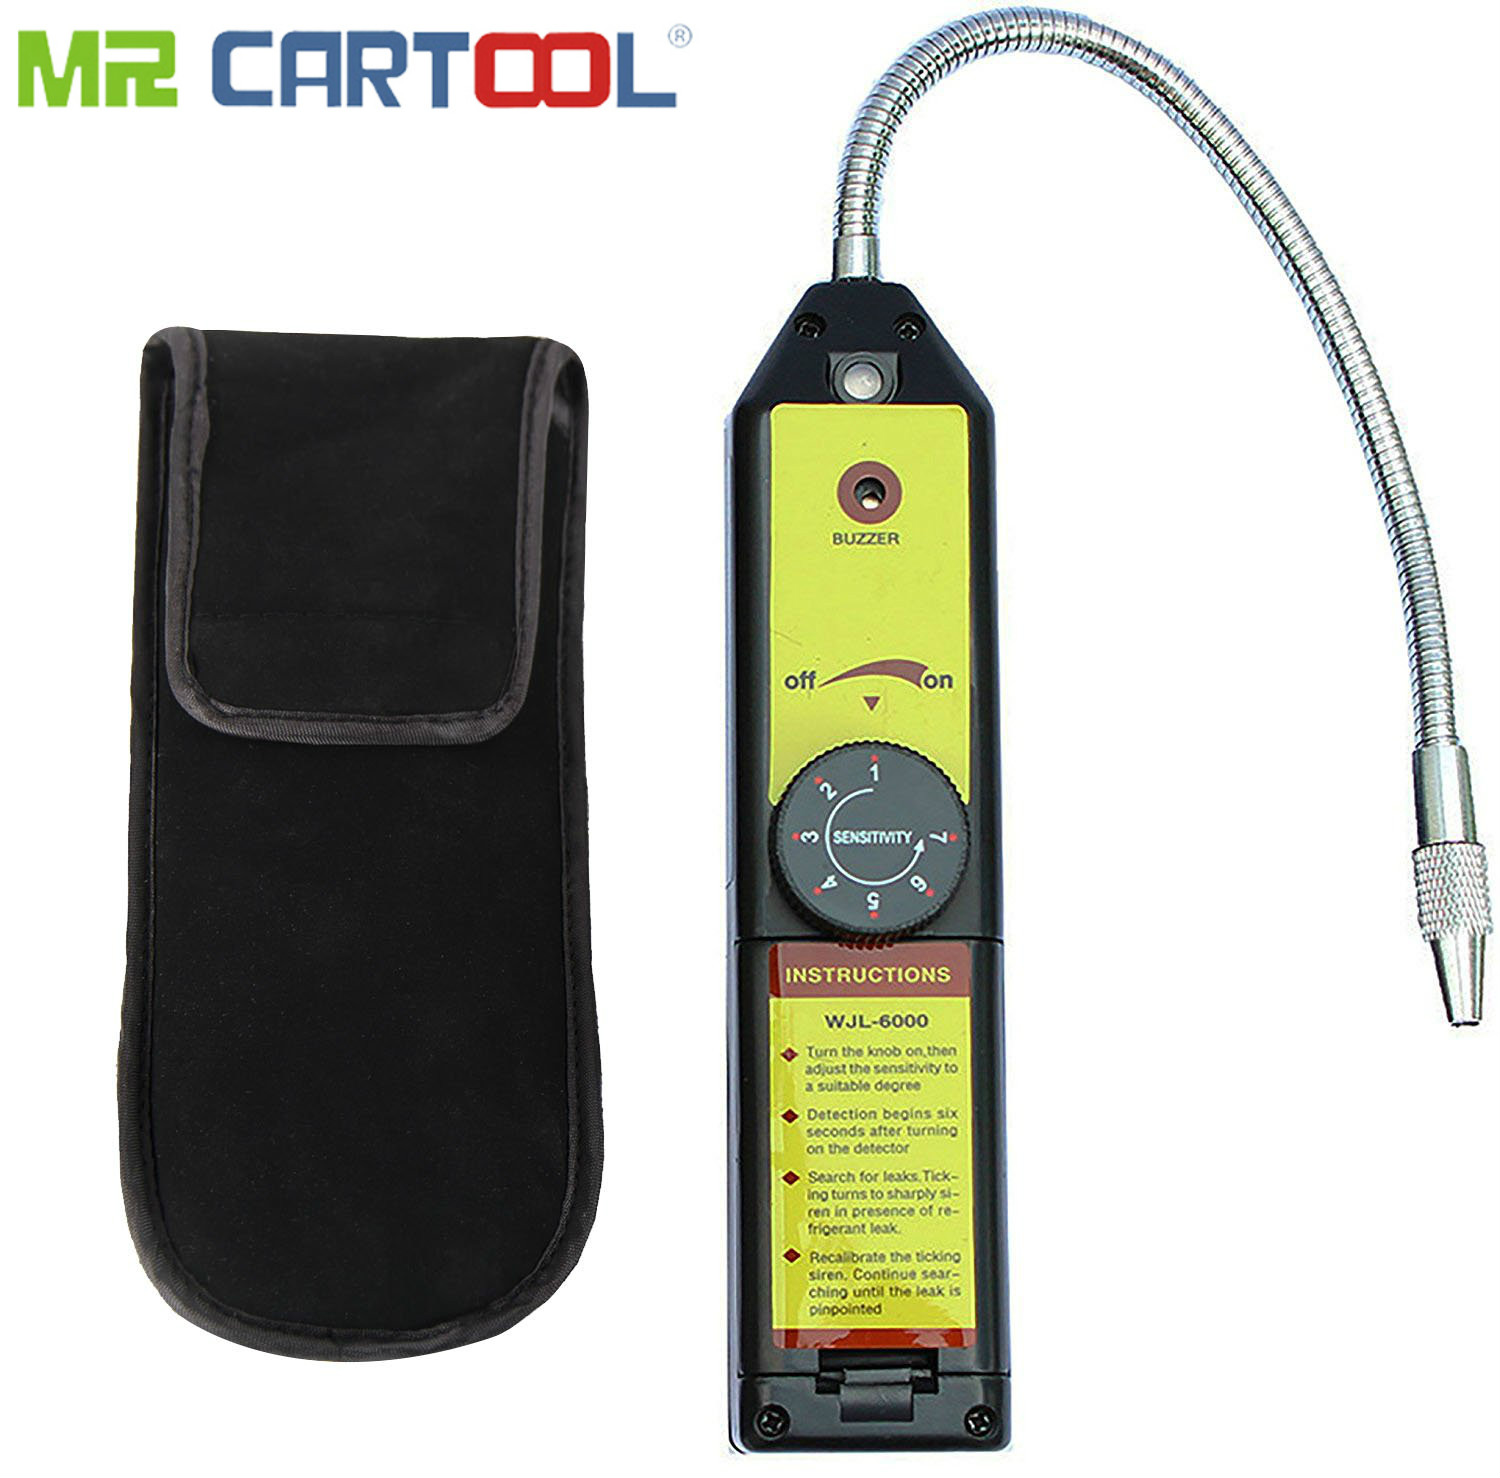 Mr Cartool Refrigerant Freon Leak Detector for HFC CFC Halogen R134a R410a R22a R600a R290 Air Condition HVAC